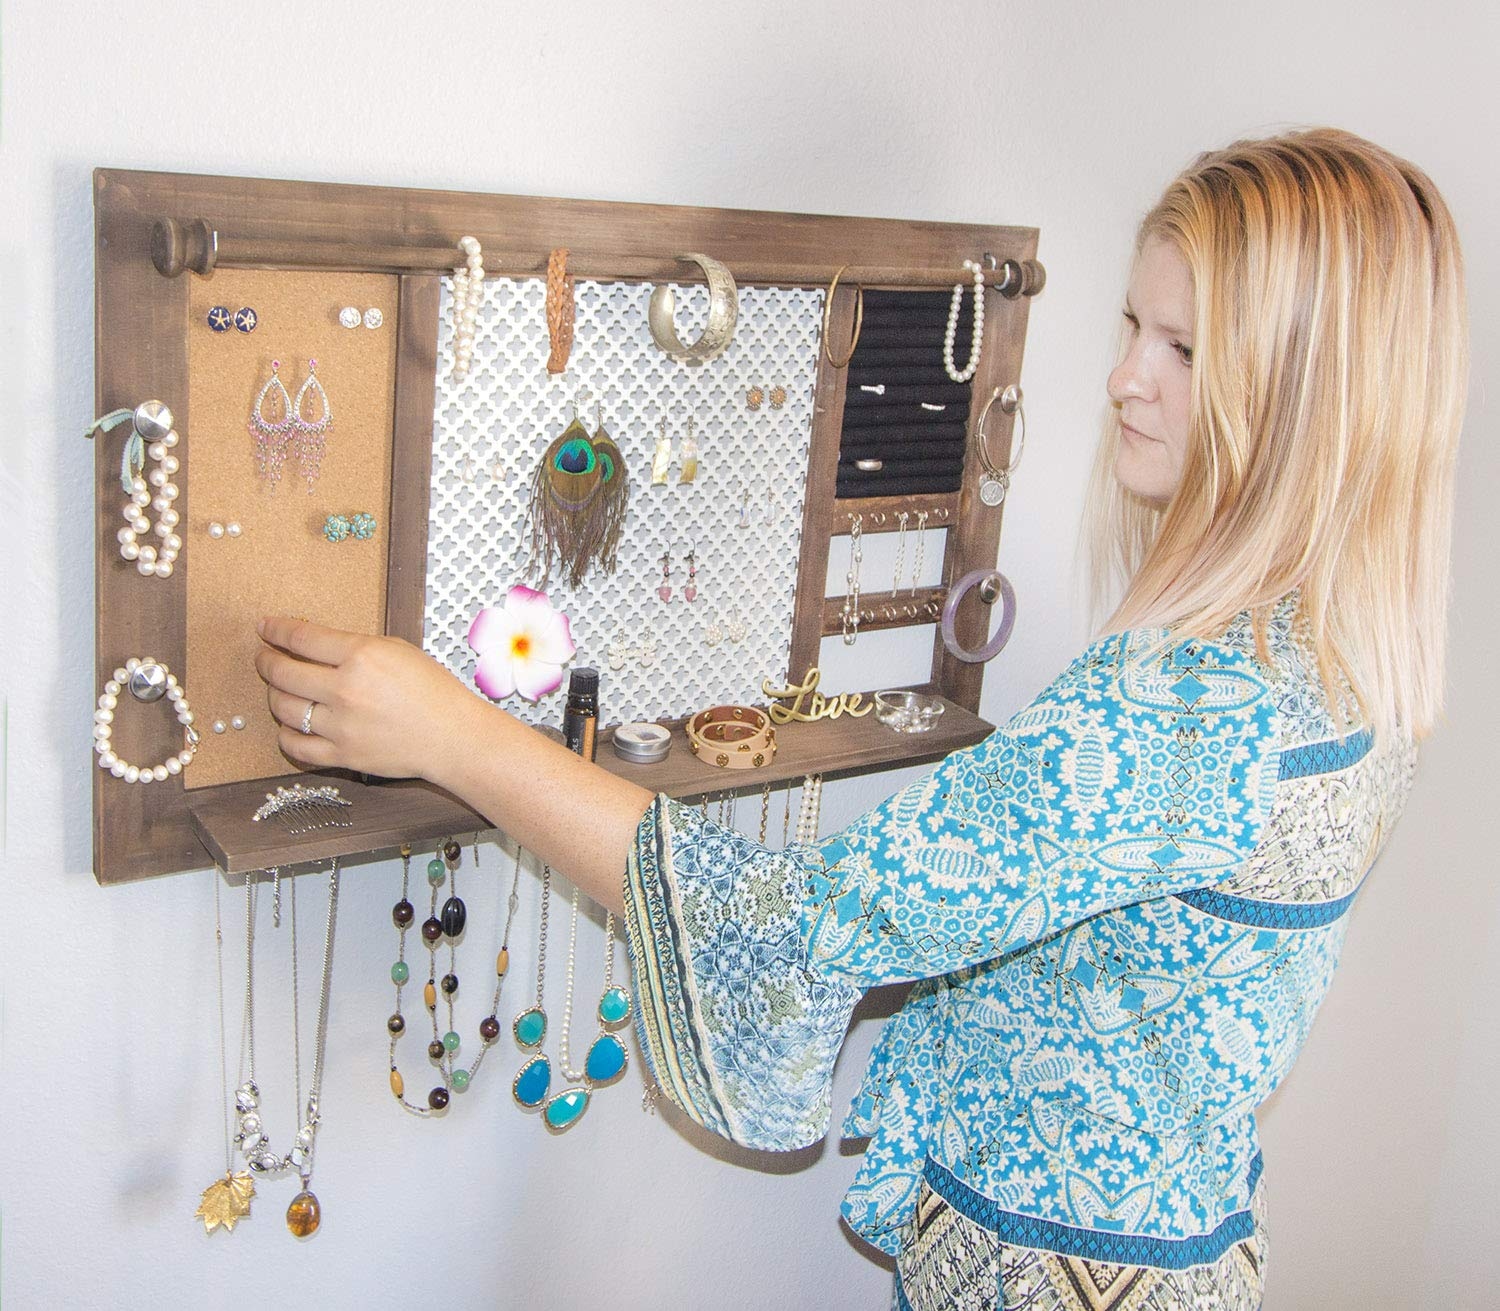 SoCal Buttercup Deluxe Rustic Wood Jewelry Organizer - from Hanging Wall Mounted Wooden Jewelry Display - Organizer for Earrings, Necklaces, Bracelets, Studs, and Accessories by SoCal Buttercup (Image #3)